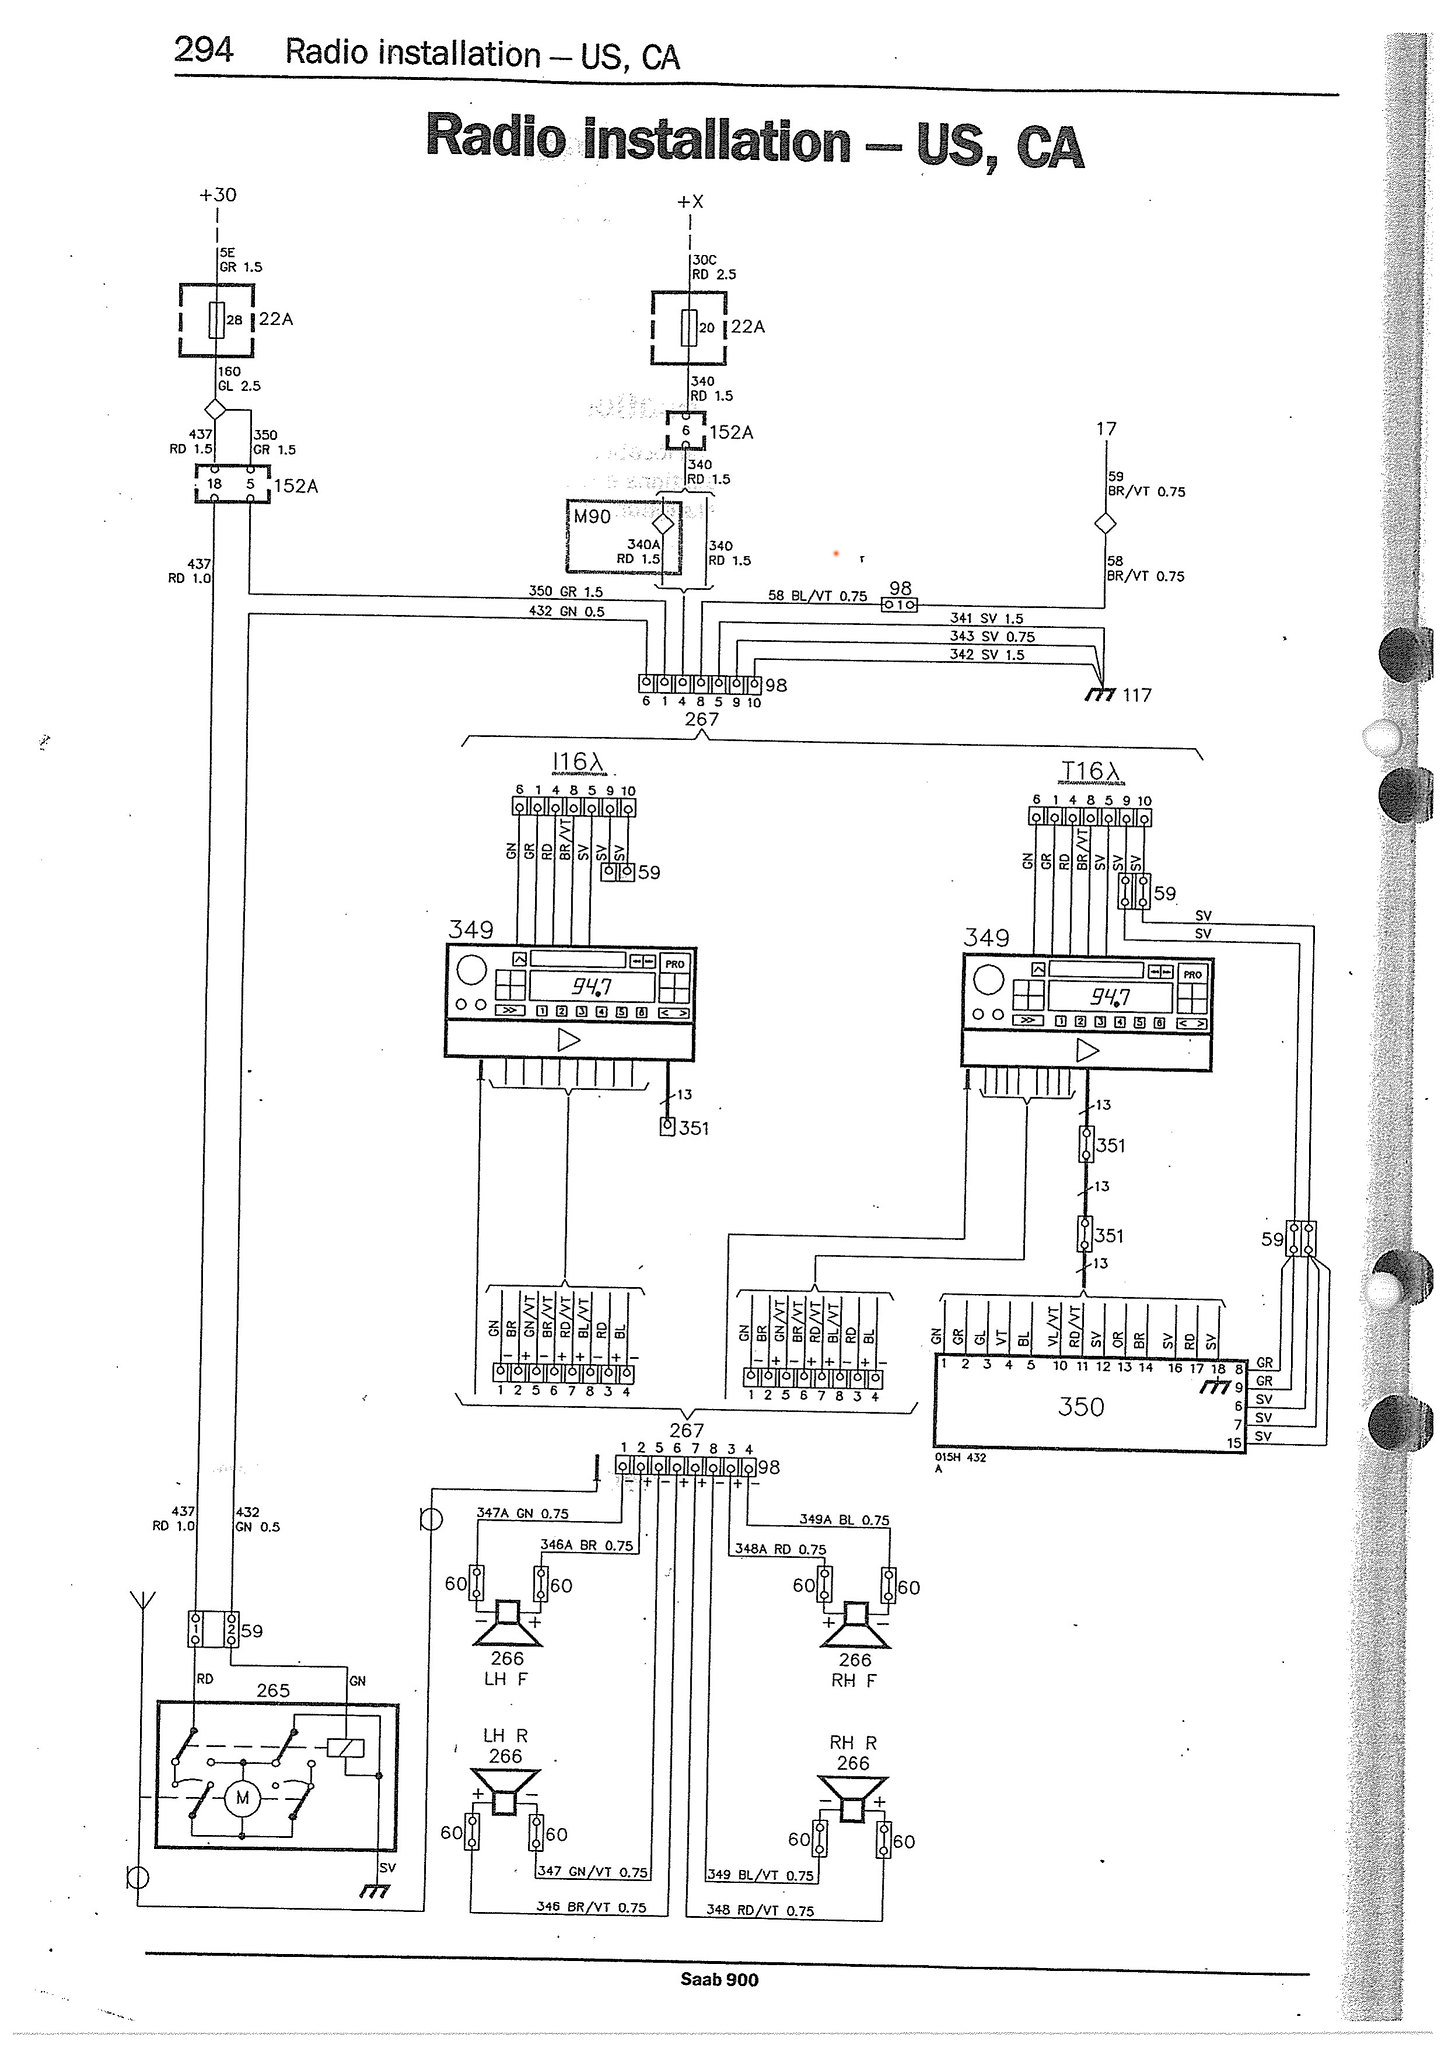 saab 900 ignition wiring diagram free picture saab 900 turbo wiring diagram